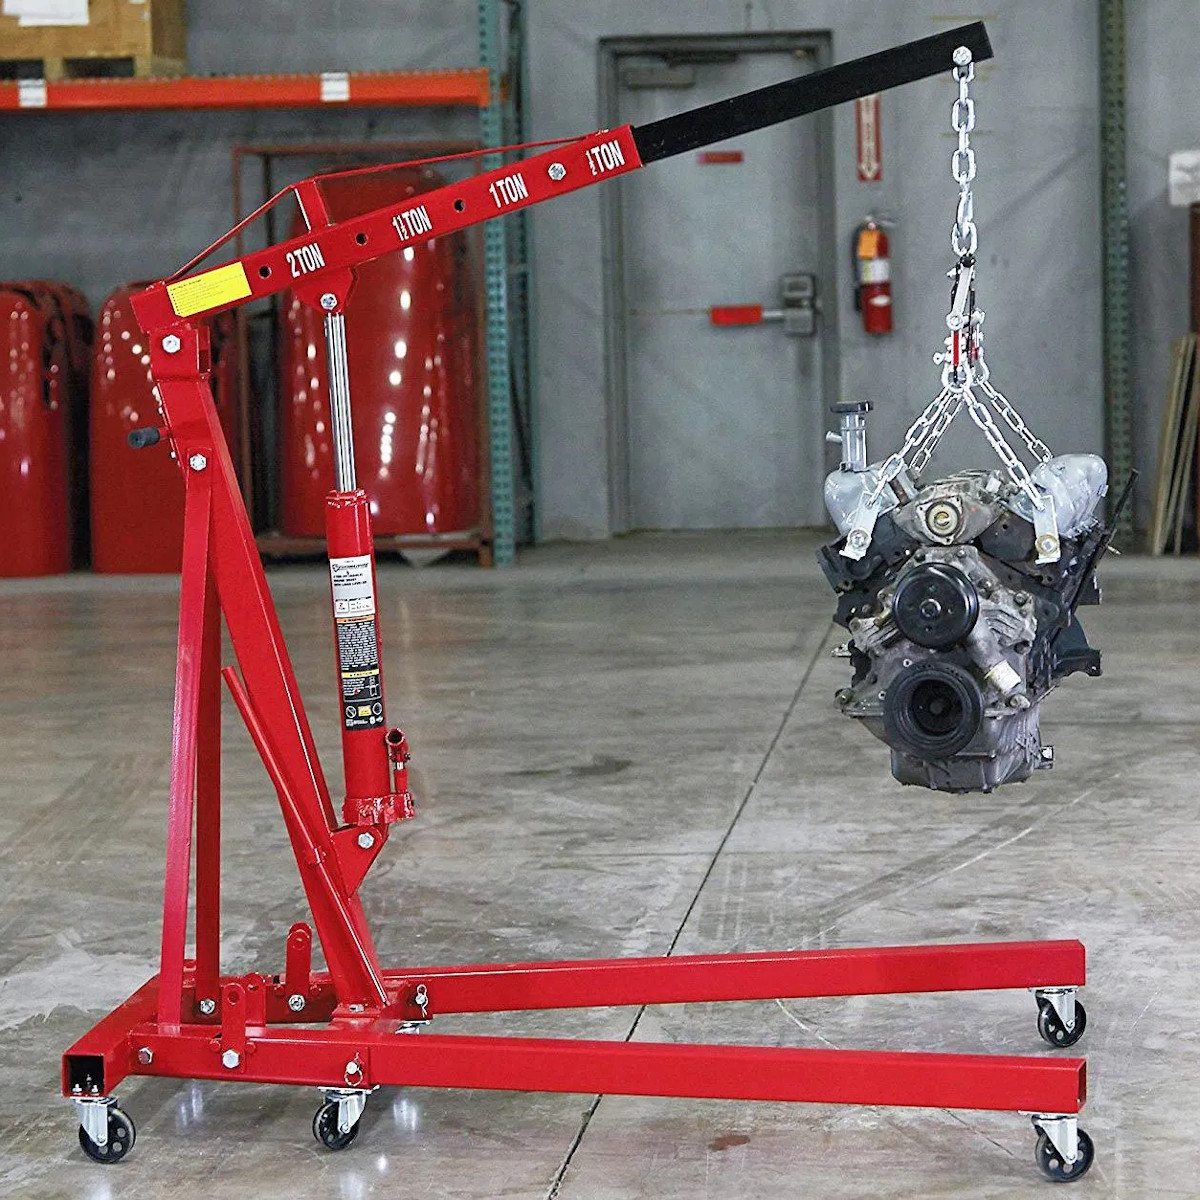 5 Best Engine Hoist Review 2020